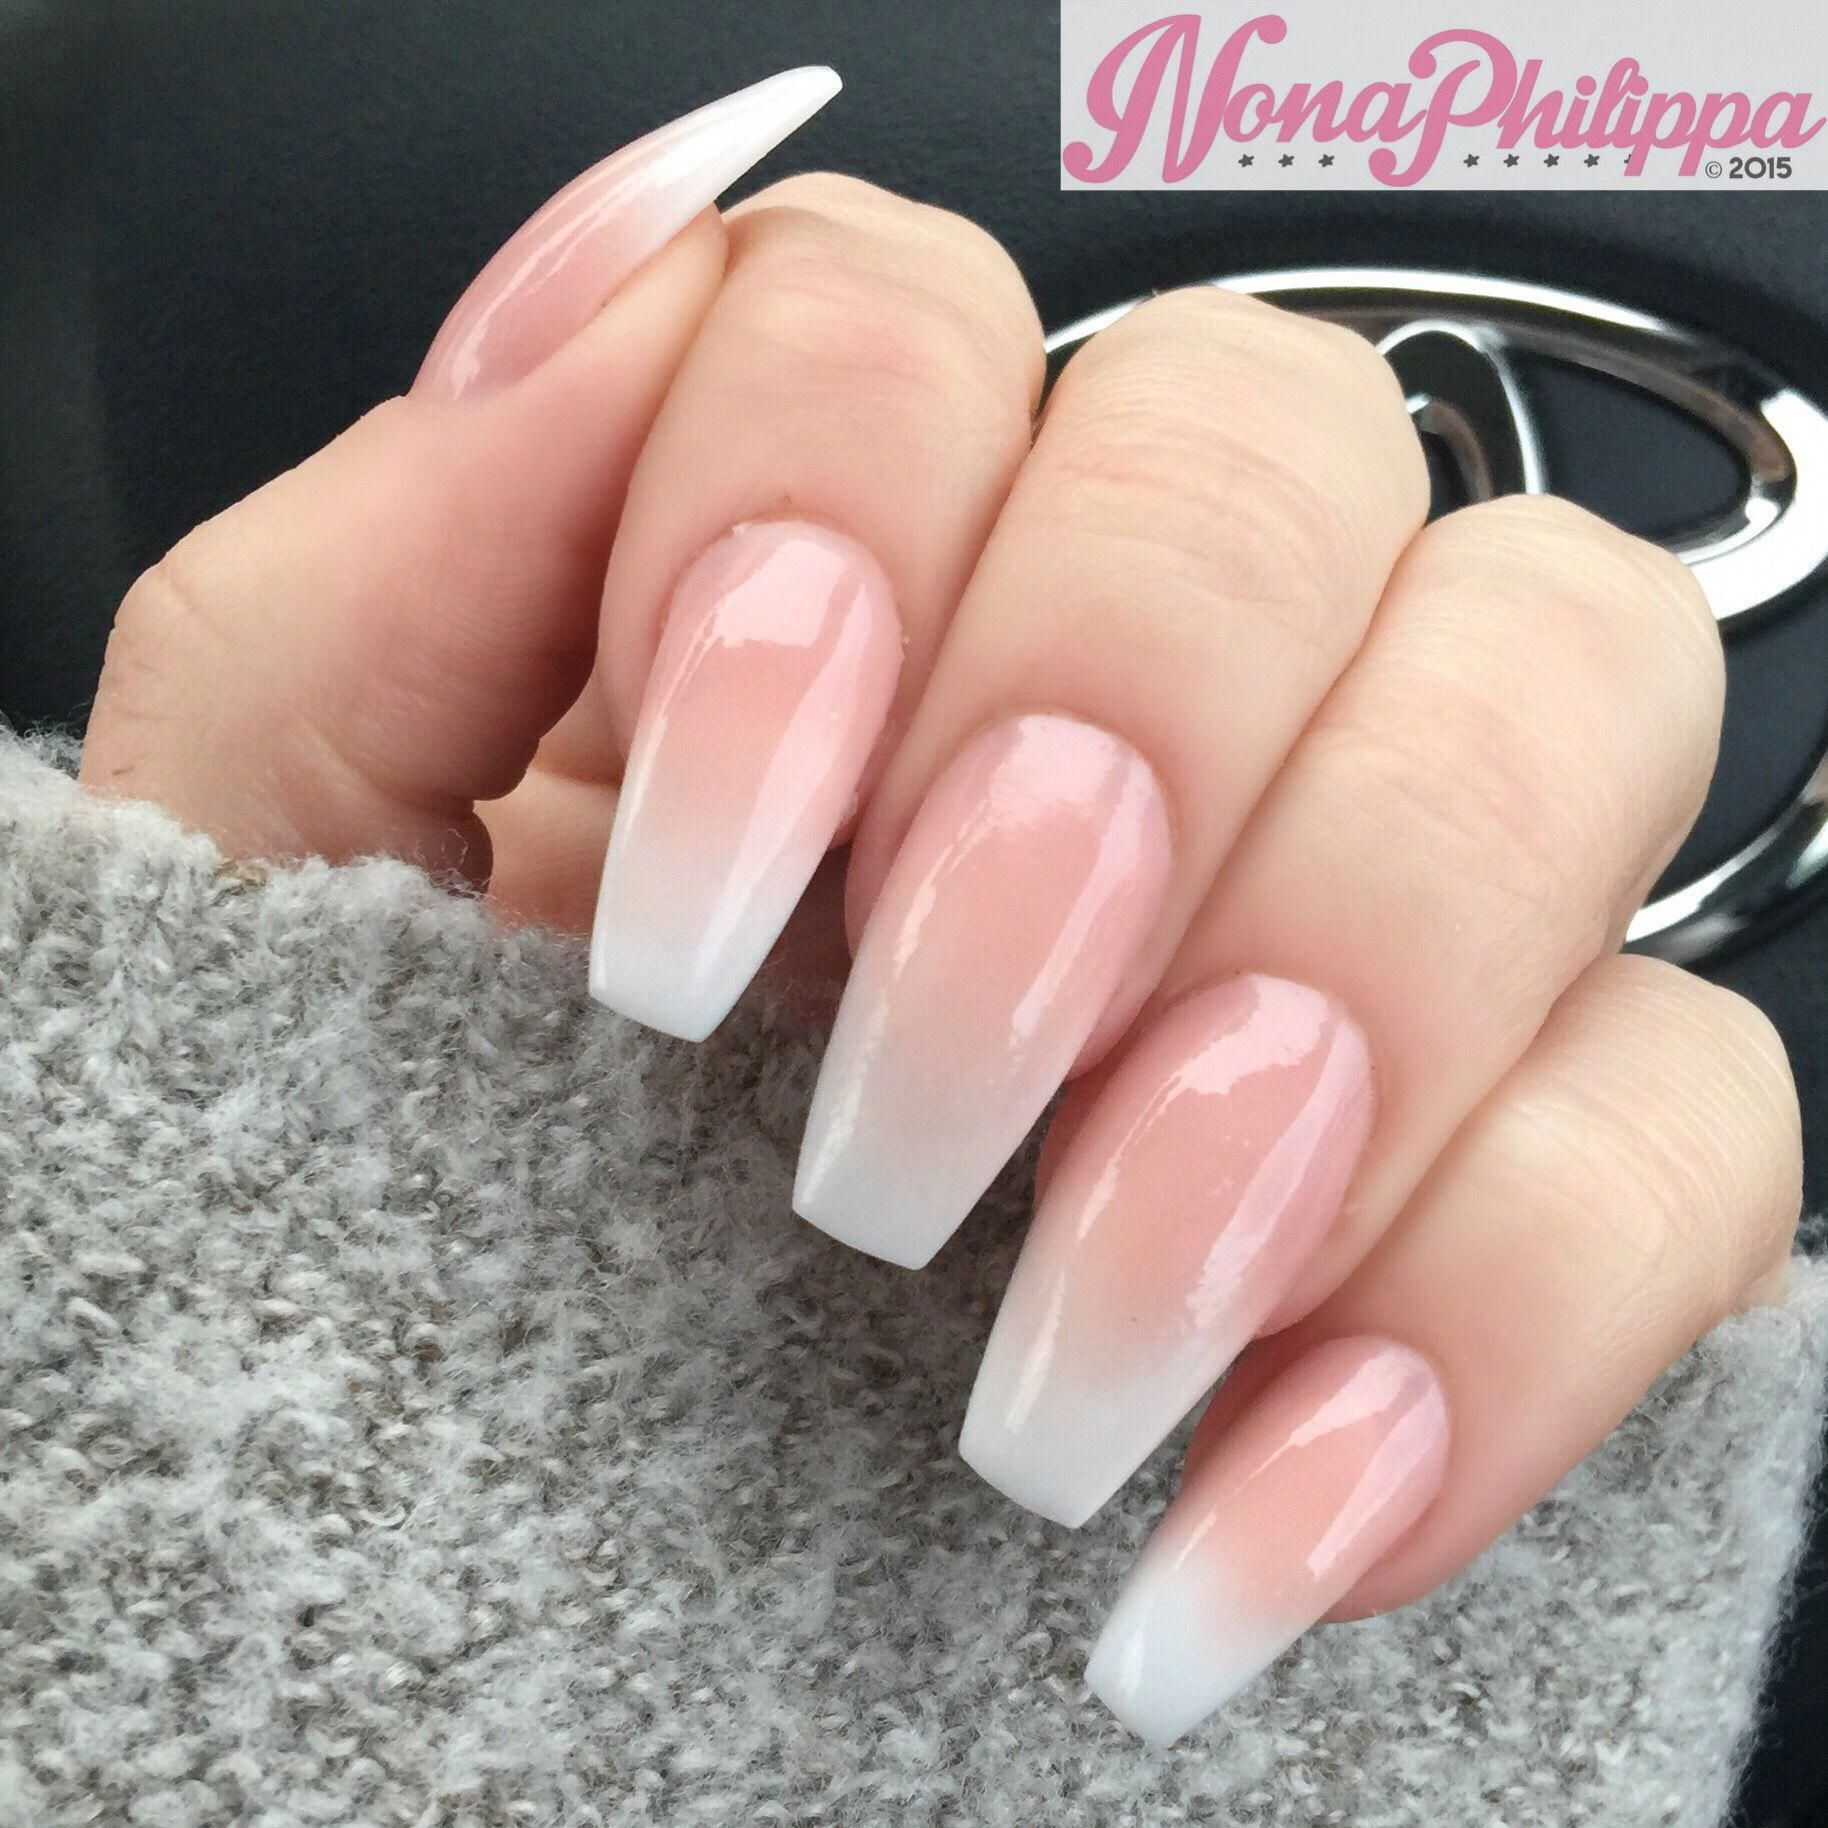 Baby Boomer Coffin Acrylic Nails Beautifulacrylicnails Square Acrylic Nails Natural Acrylic Nails Acrylic Nails Coffin